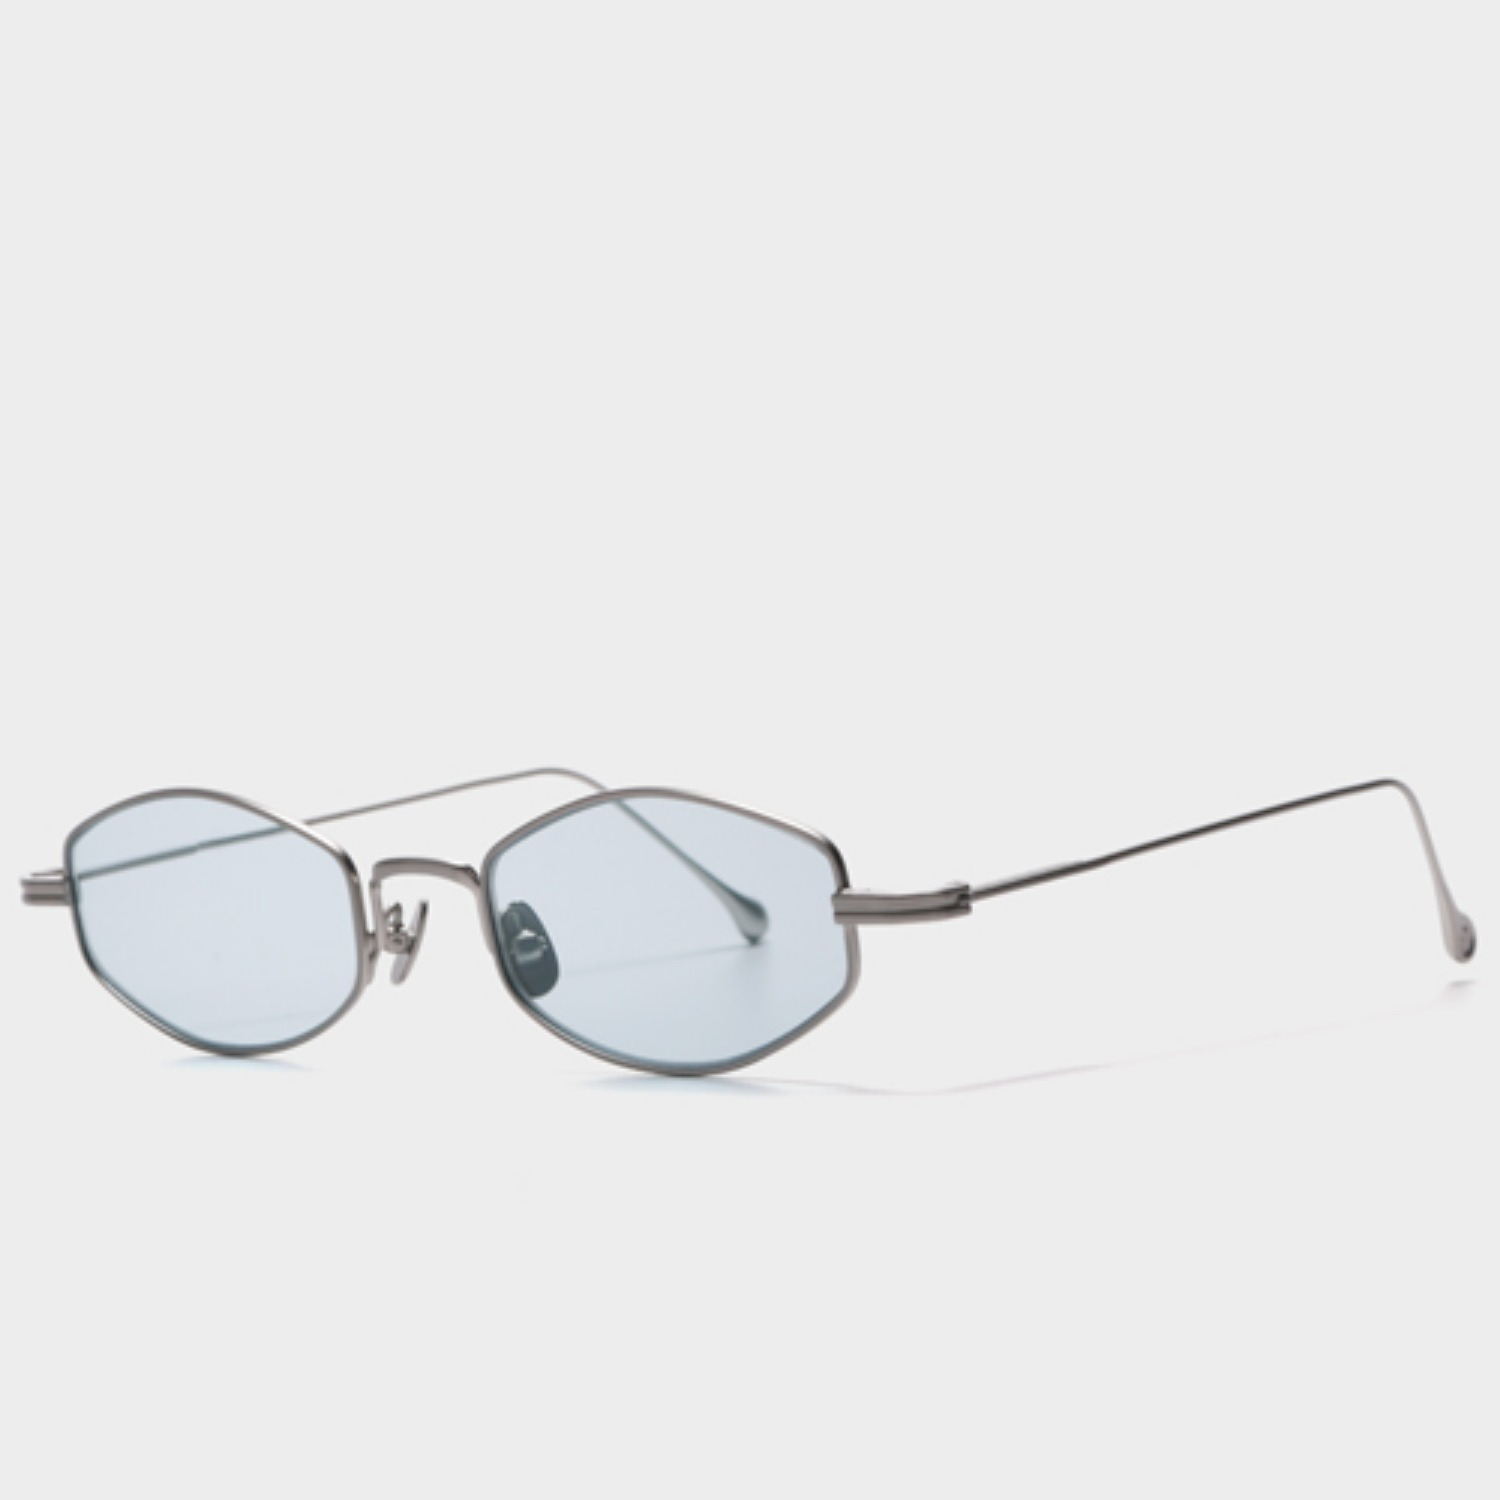 스틸러 CARTER STL03 ANTIQUE SILVER (Blue Tint Lens)